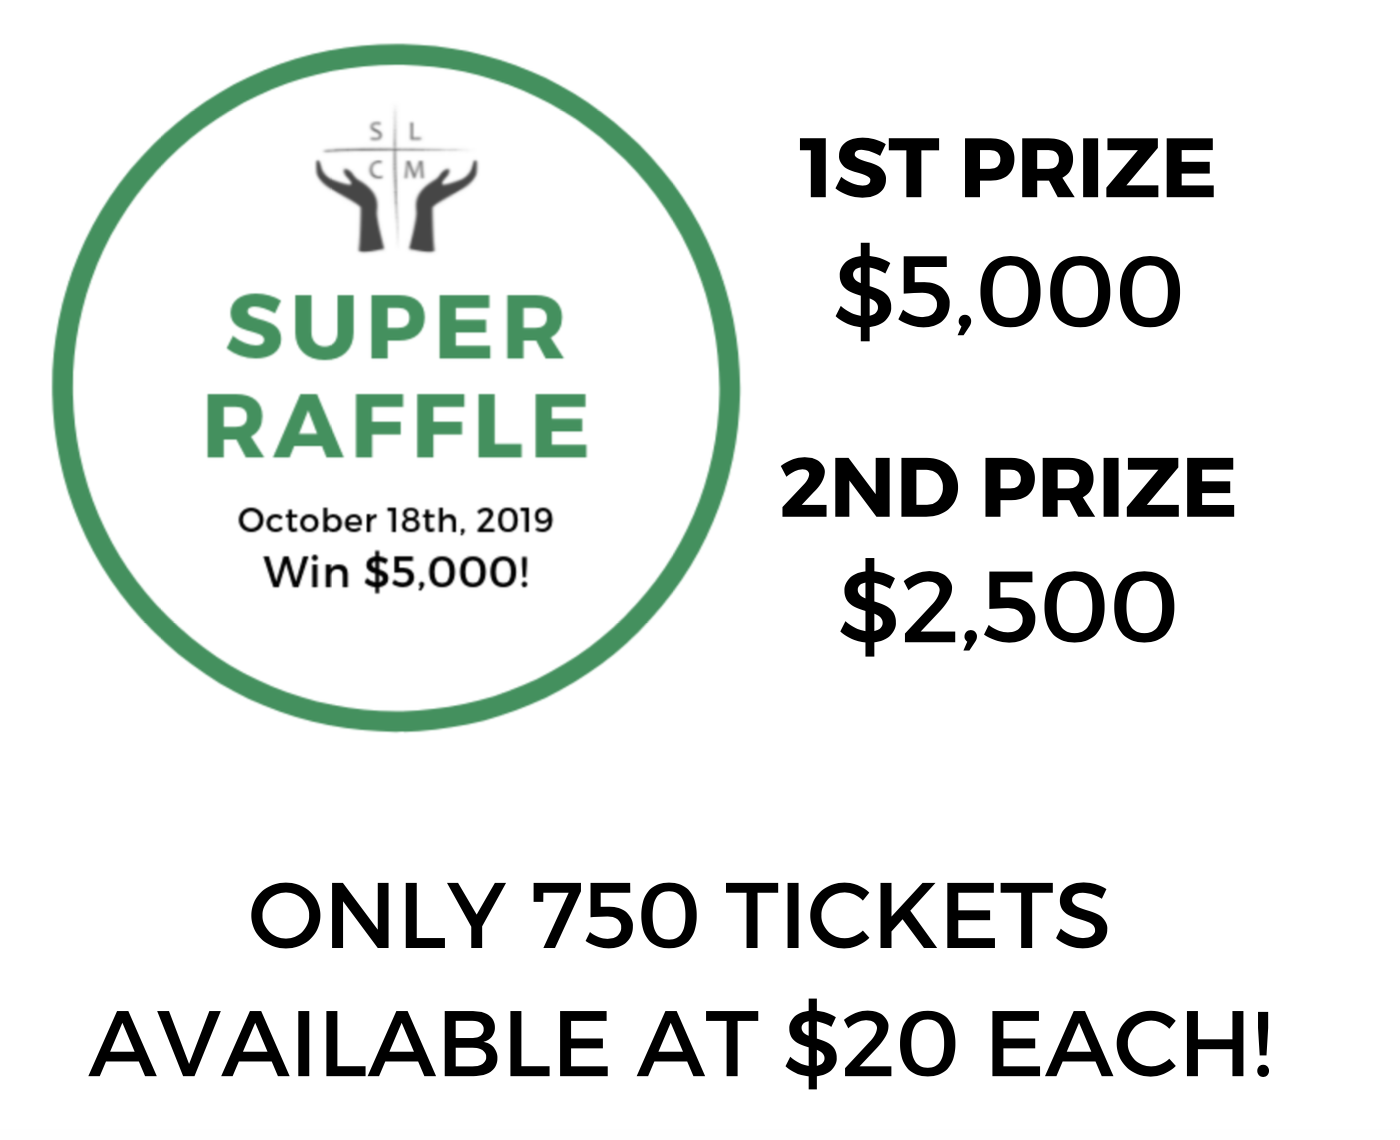 Don't miss your chance! - Drawing to be held Friday, October 18th, 2019 at 1:00PM in Louisville, KY. Winners need not be present to win.All proceeds from this raffle will support SLCM's mission.Charitable Gaming License: EXE0002080